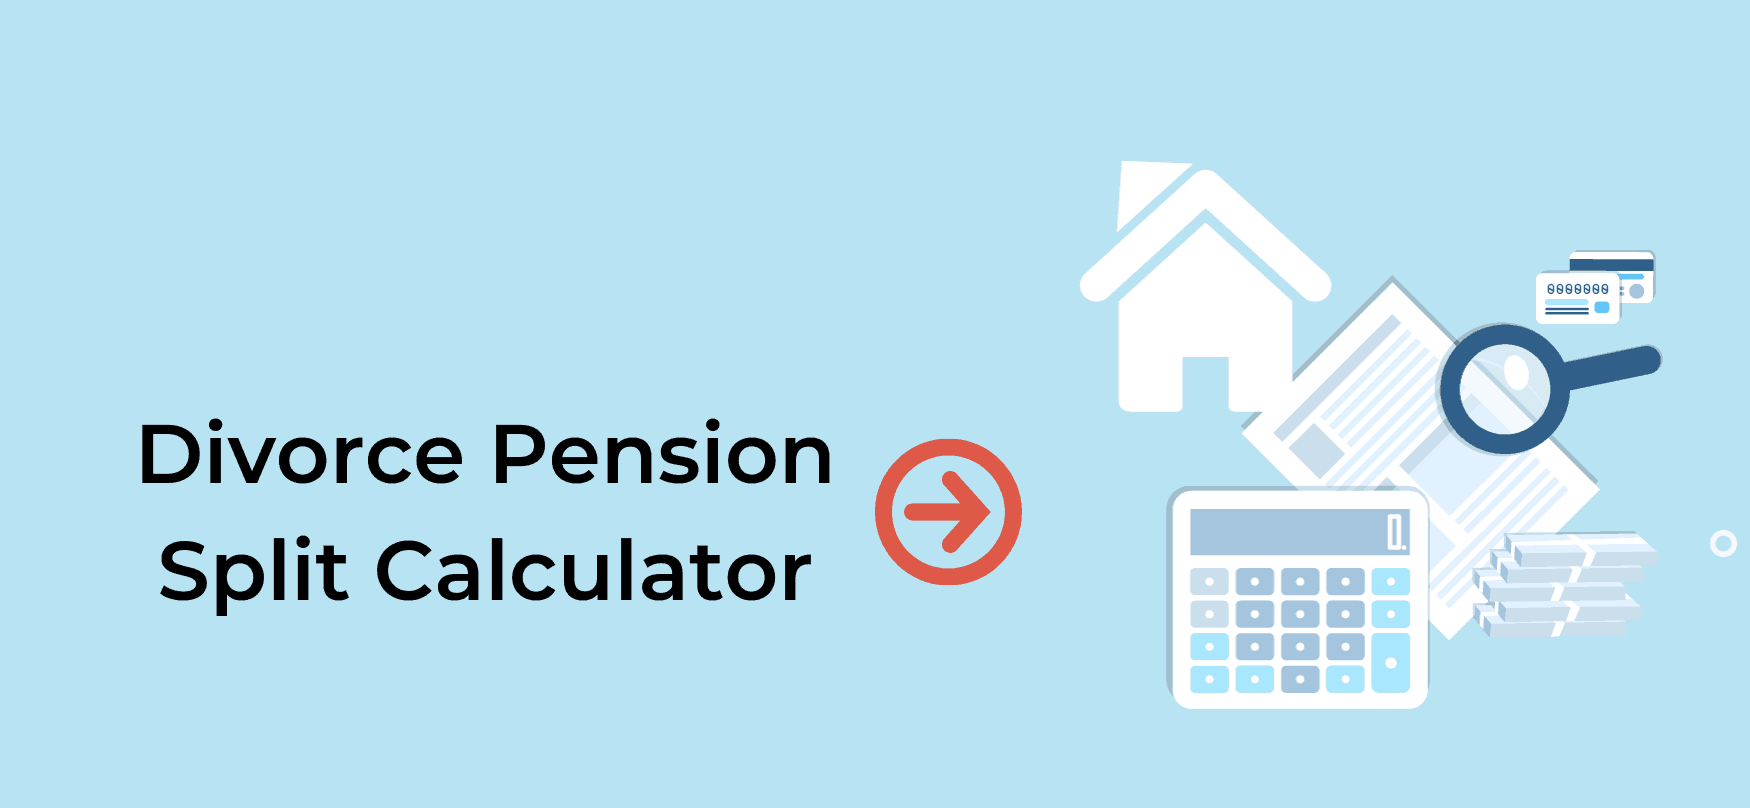 Divorce Pension Split Calculator